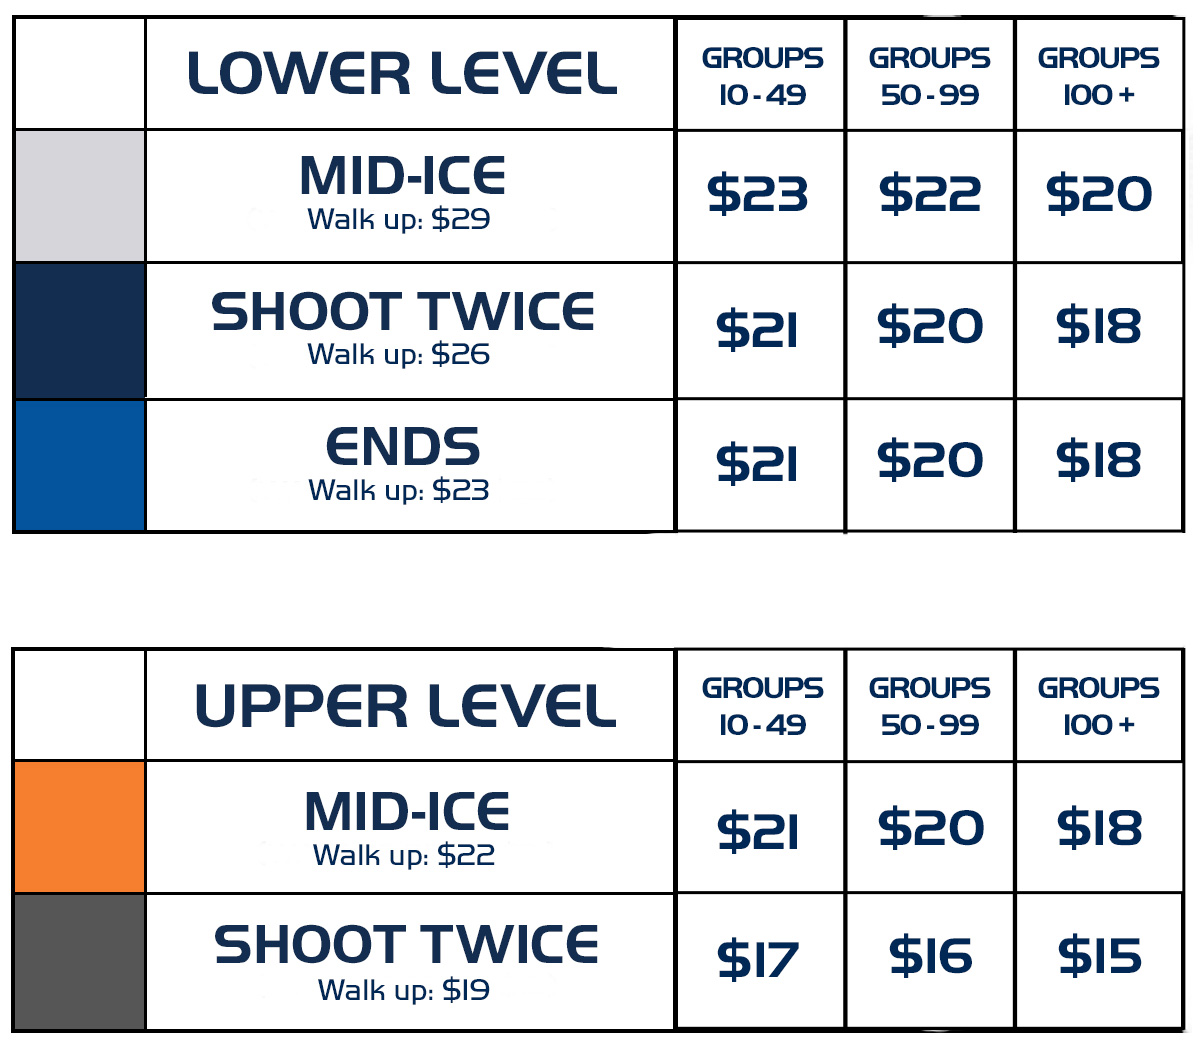 2020-21 Group Pricing